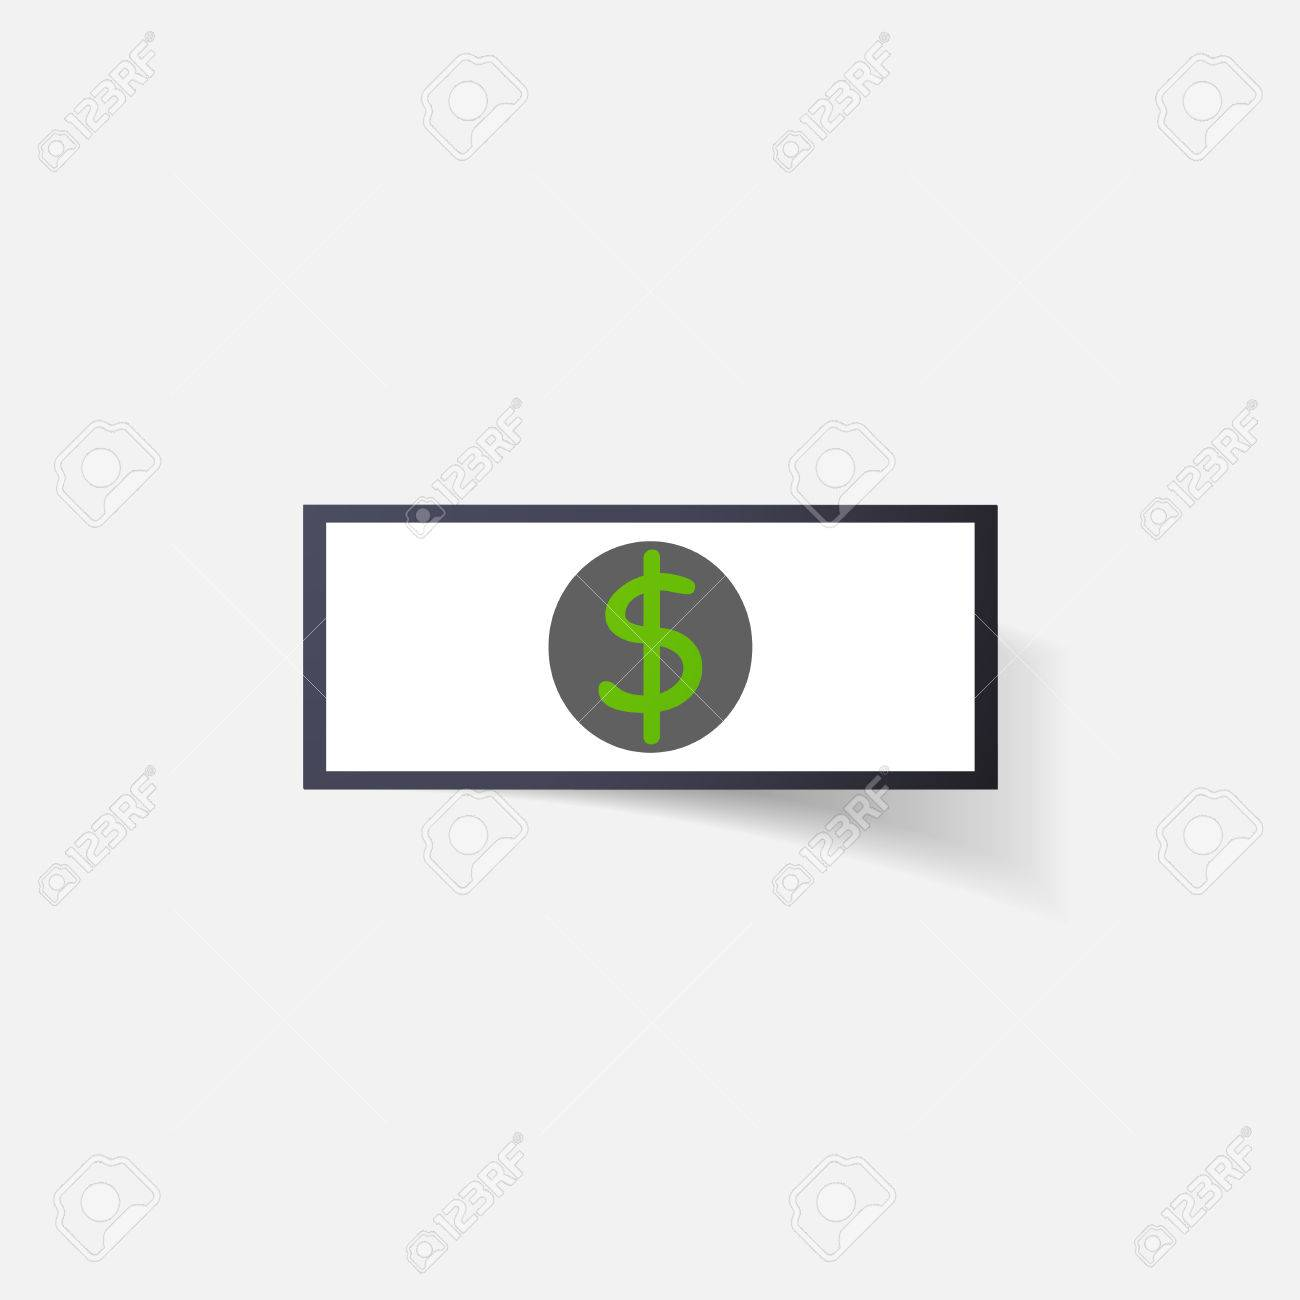 Paper Clipped Sticker Money Dollar Bill With The Image Isolated Il Ration Icon Stock